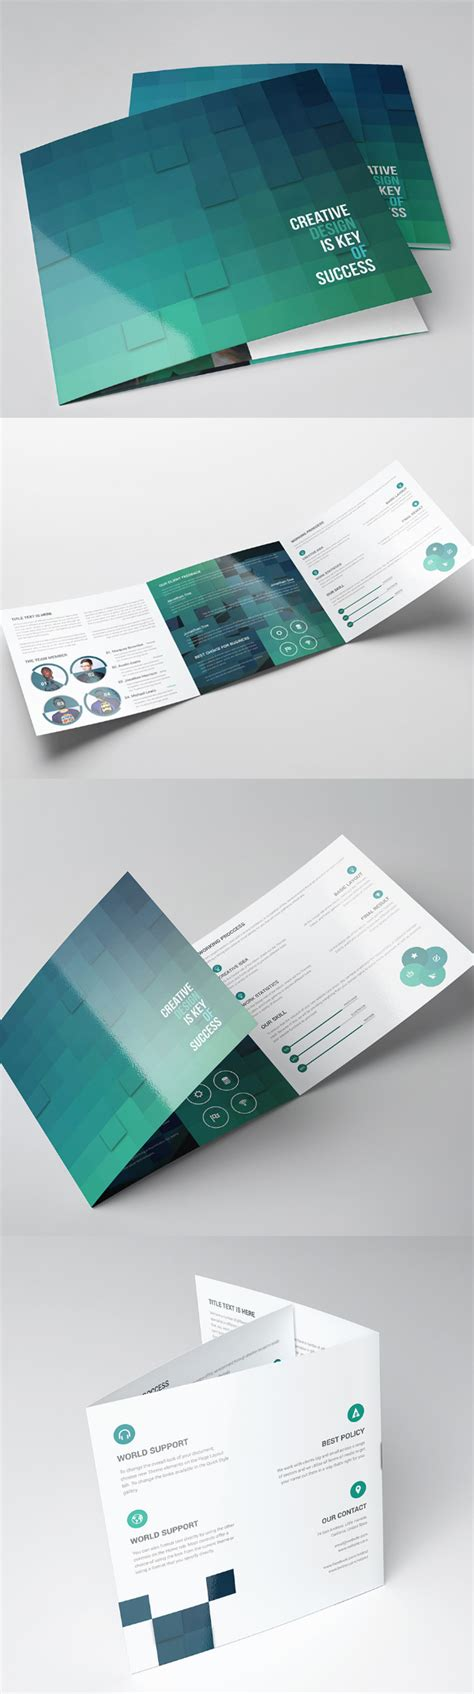 Web Design Brochure Template by New Catalog Brochure Design Templates Design Graphic